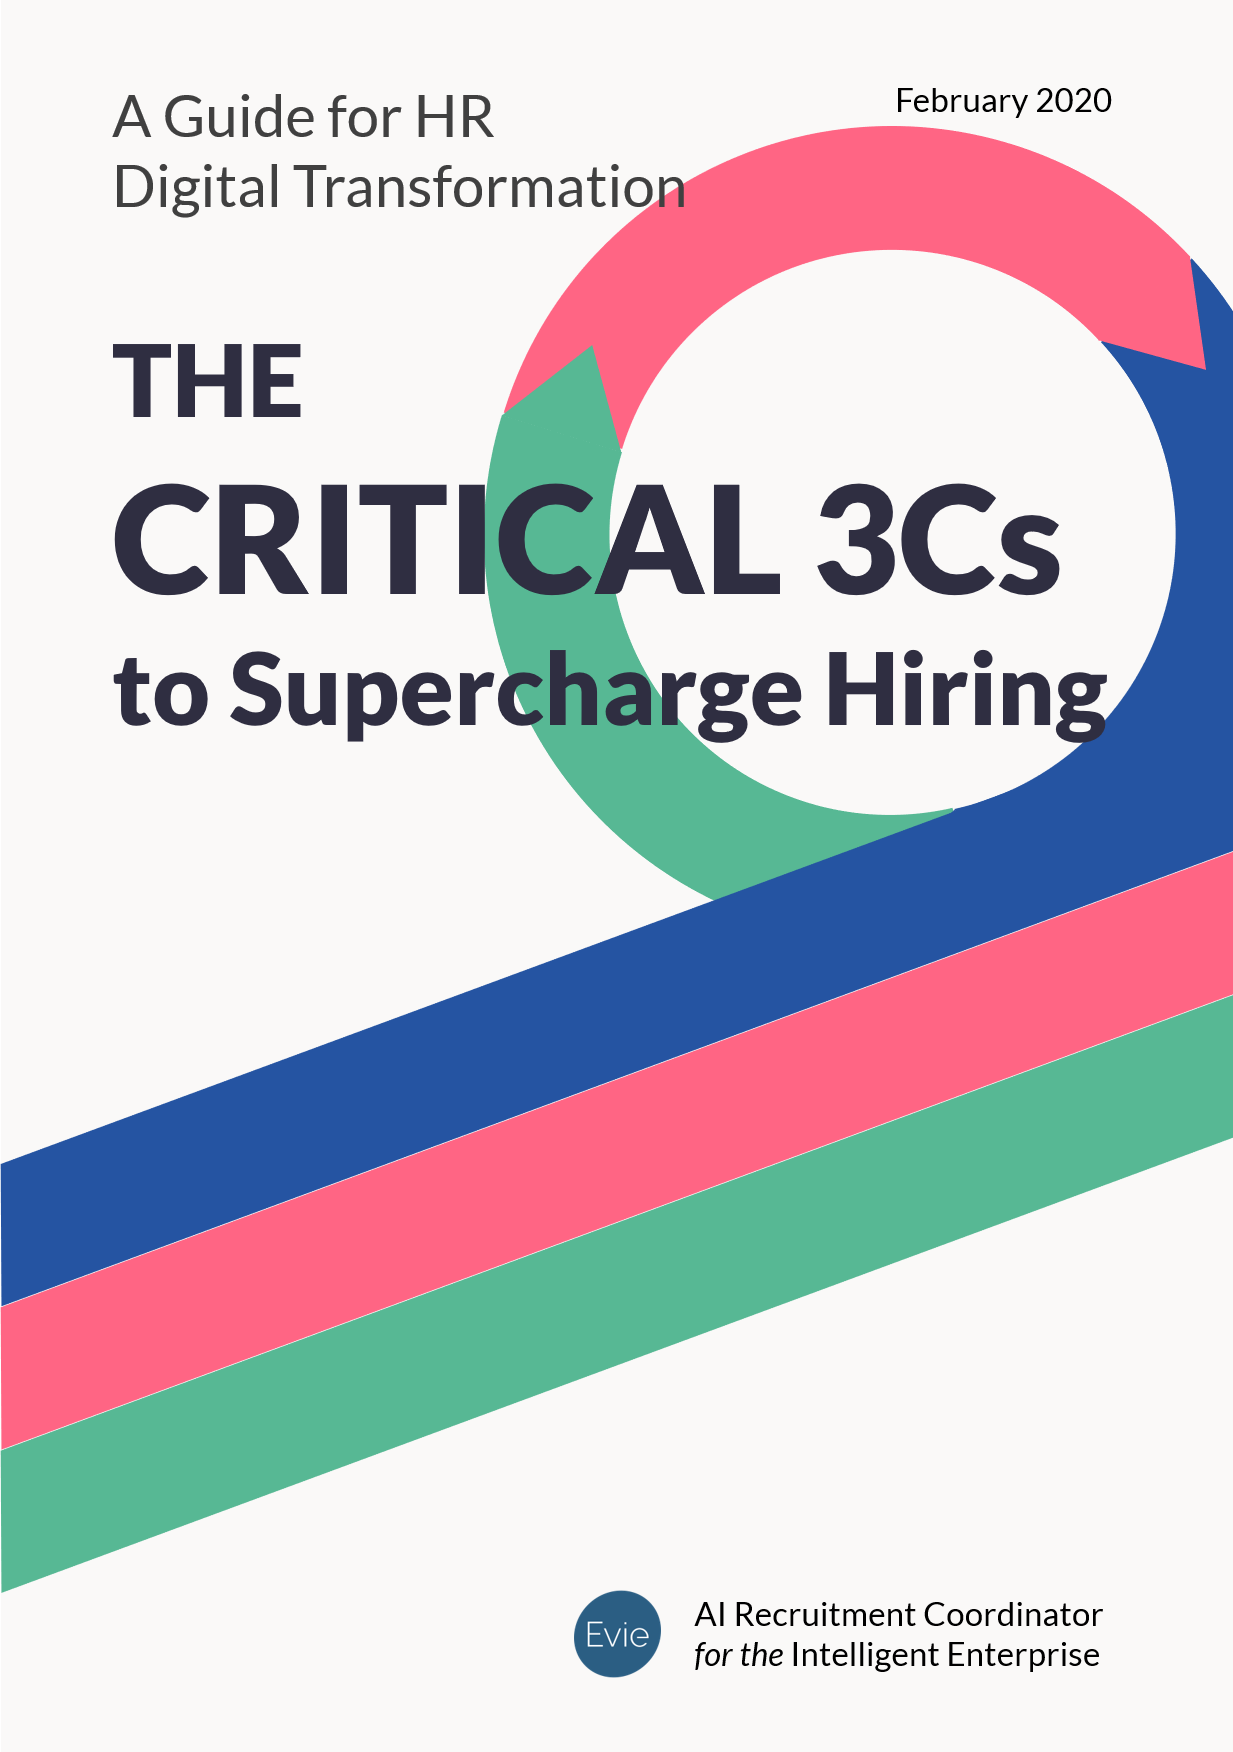 The Critical 3Cs to Supercharge Hiring Whitepaper